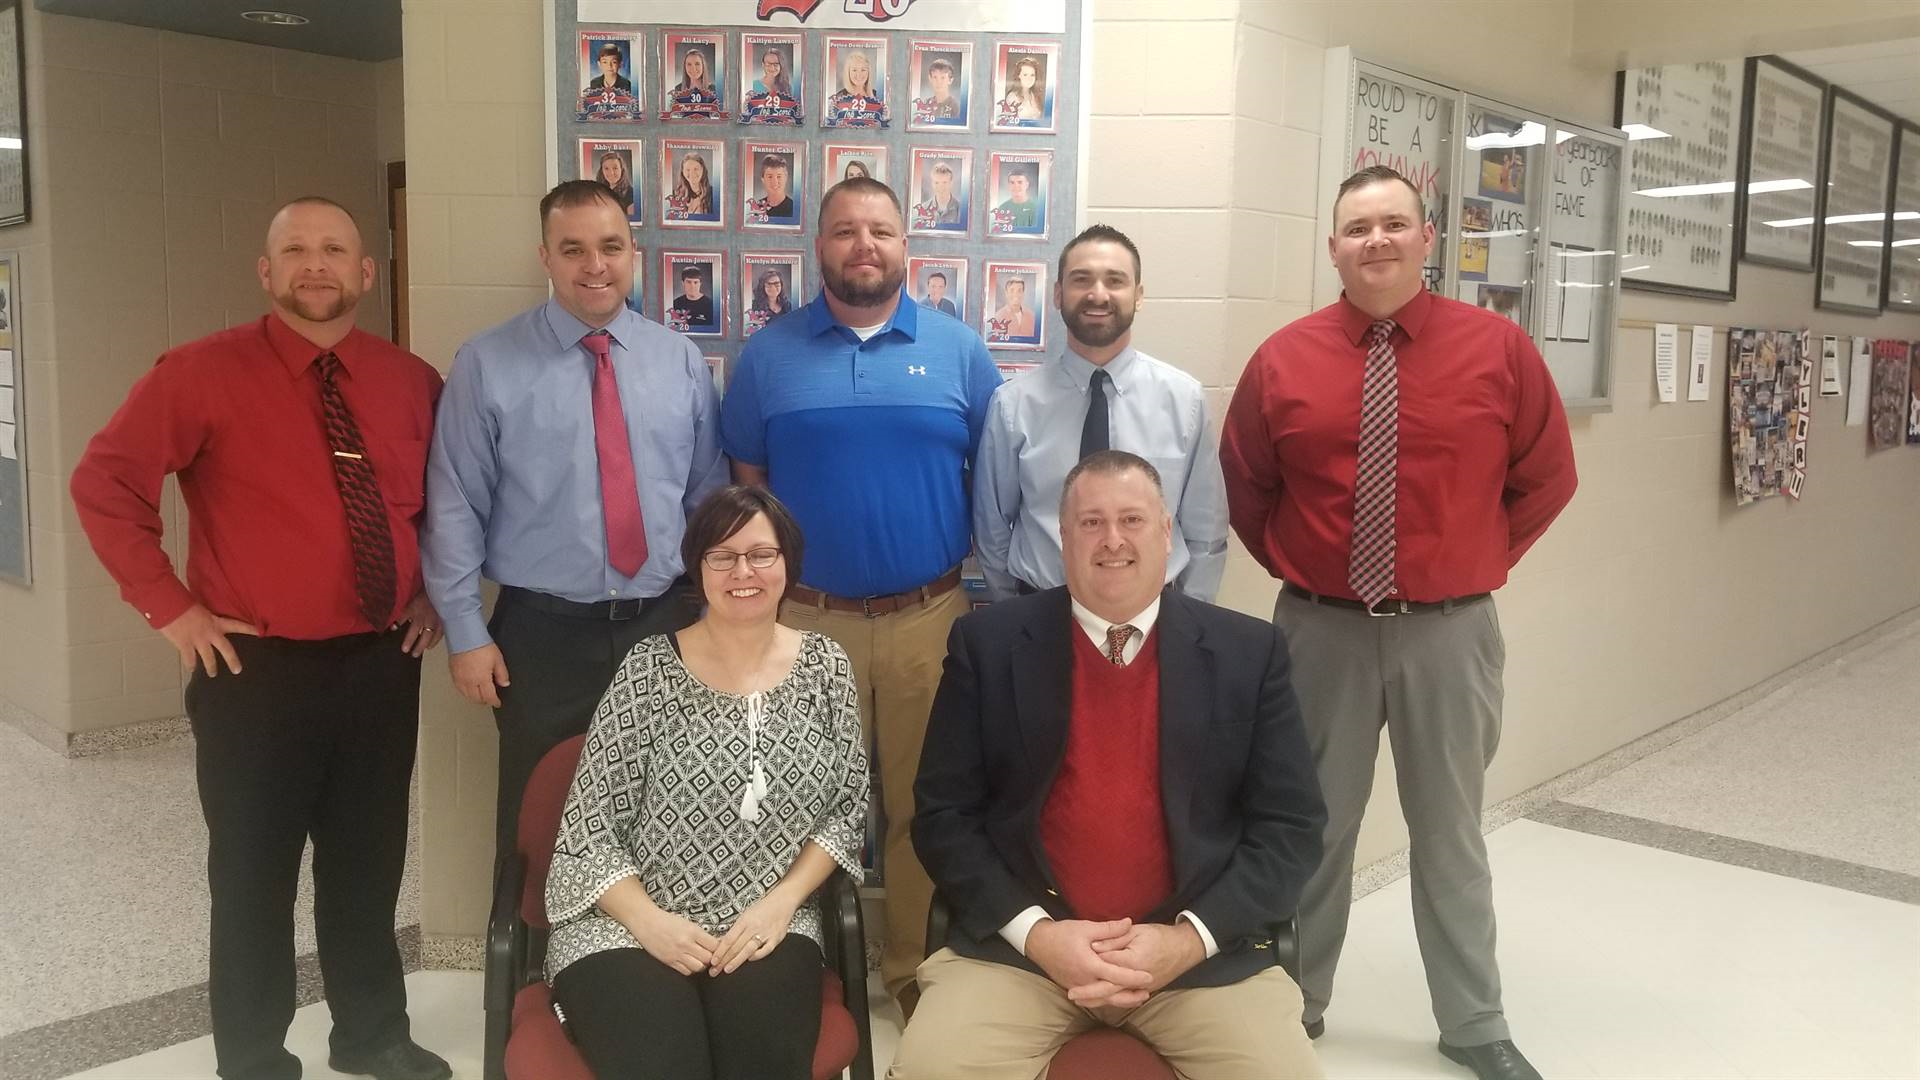 2018 Northwest Schools Board of Education members: Back row L - R Jared Lute (Board President), Dana